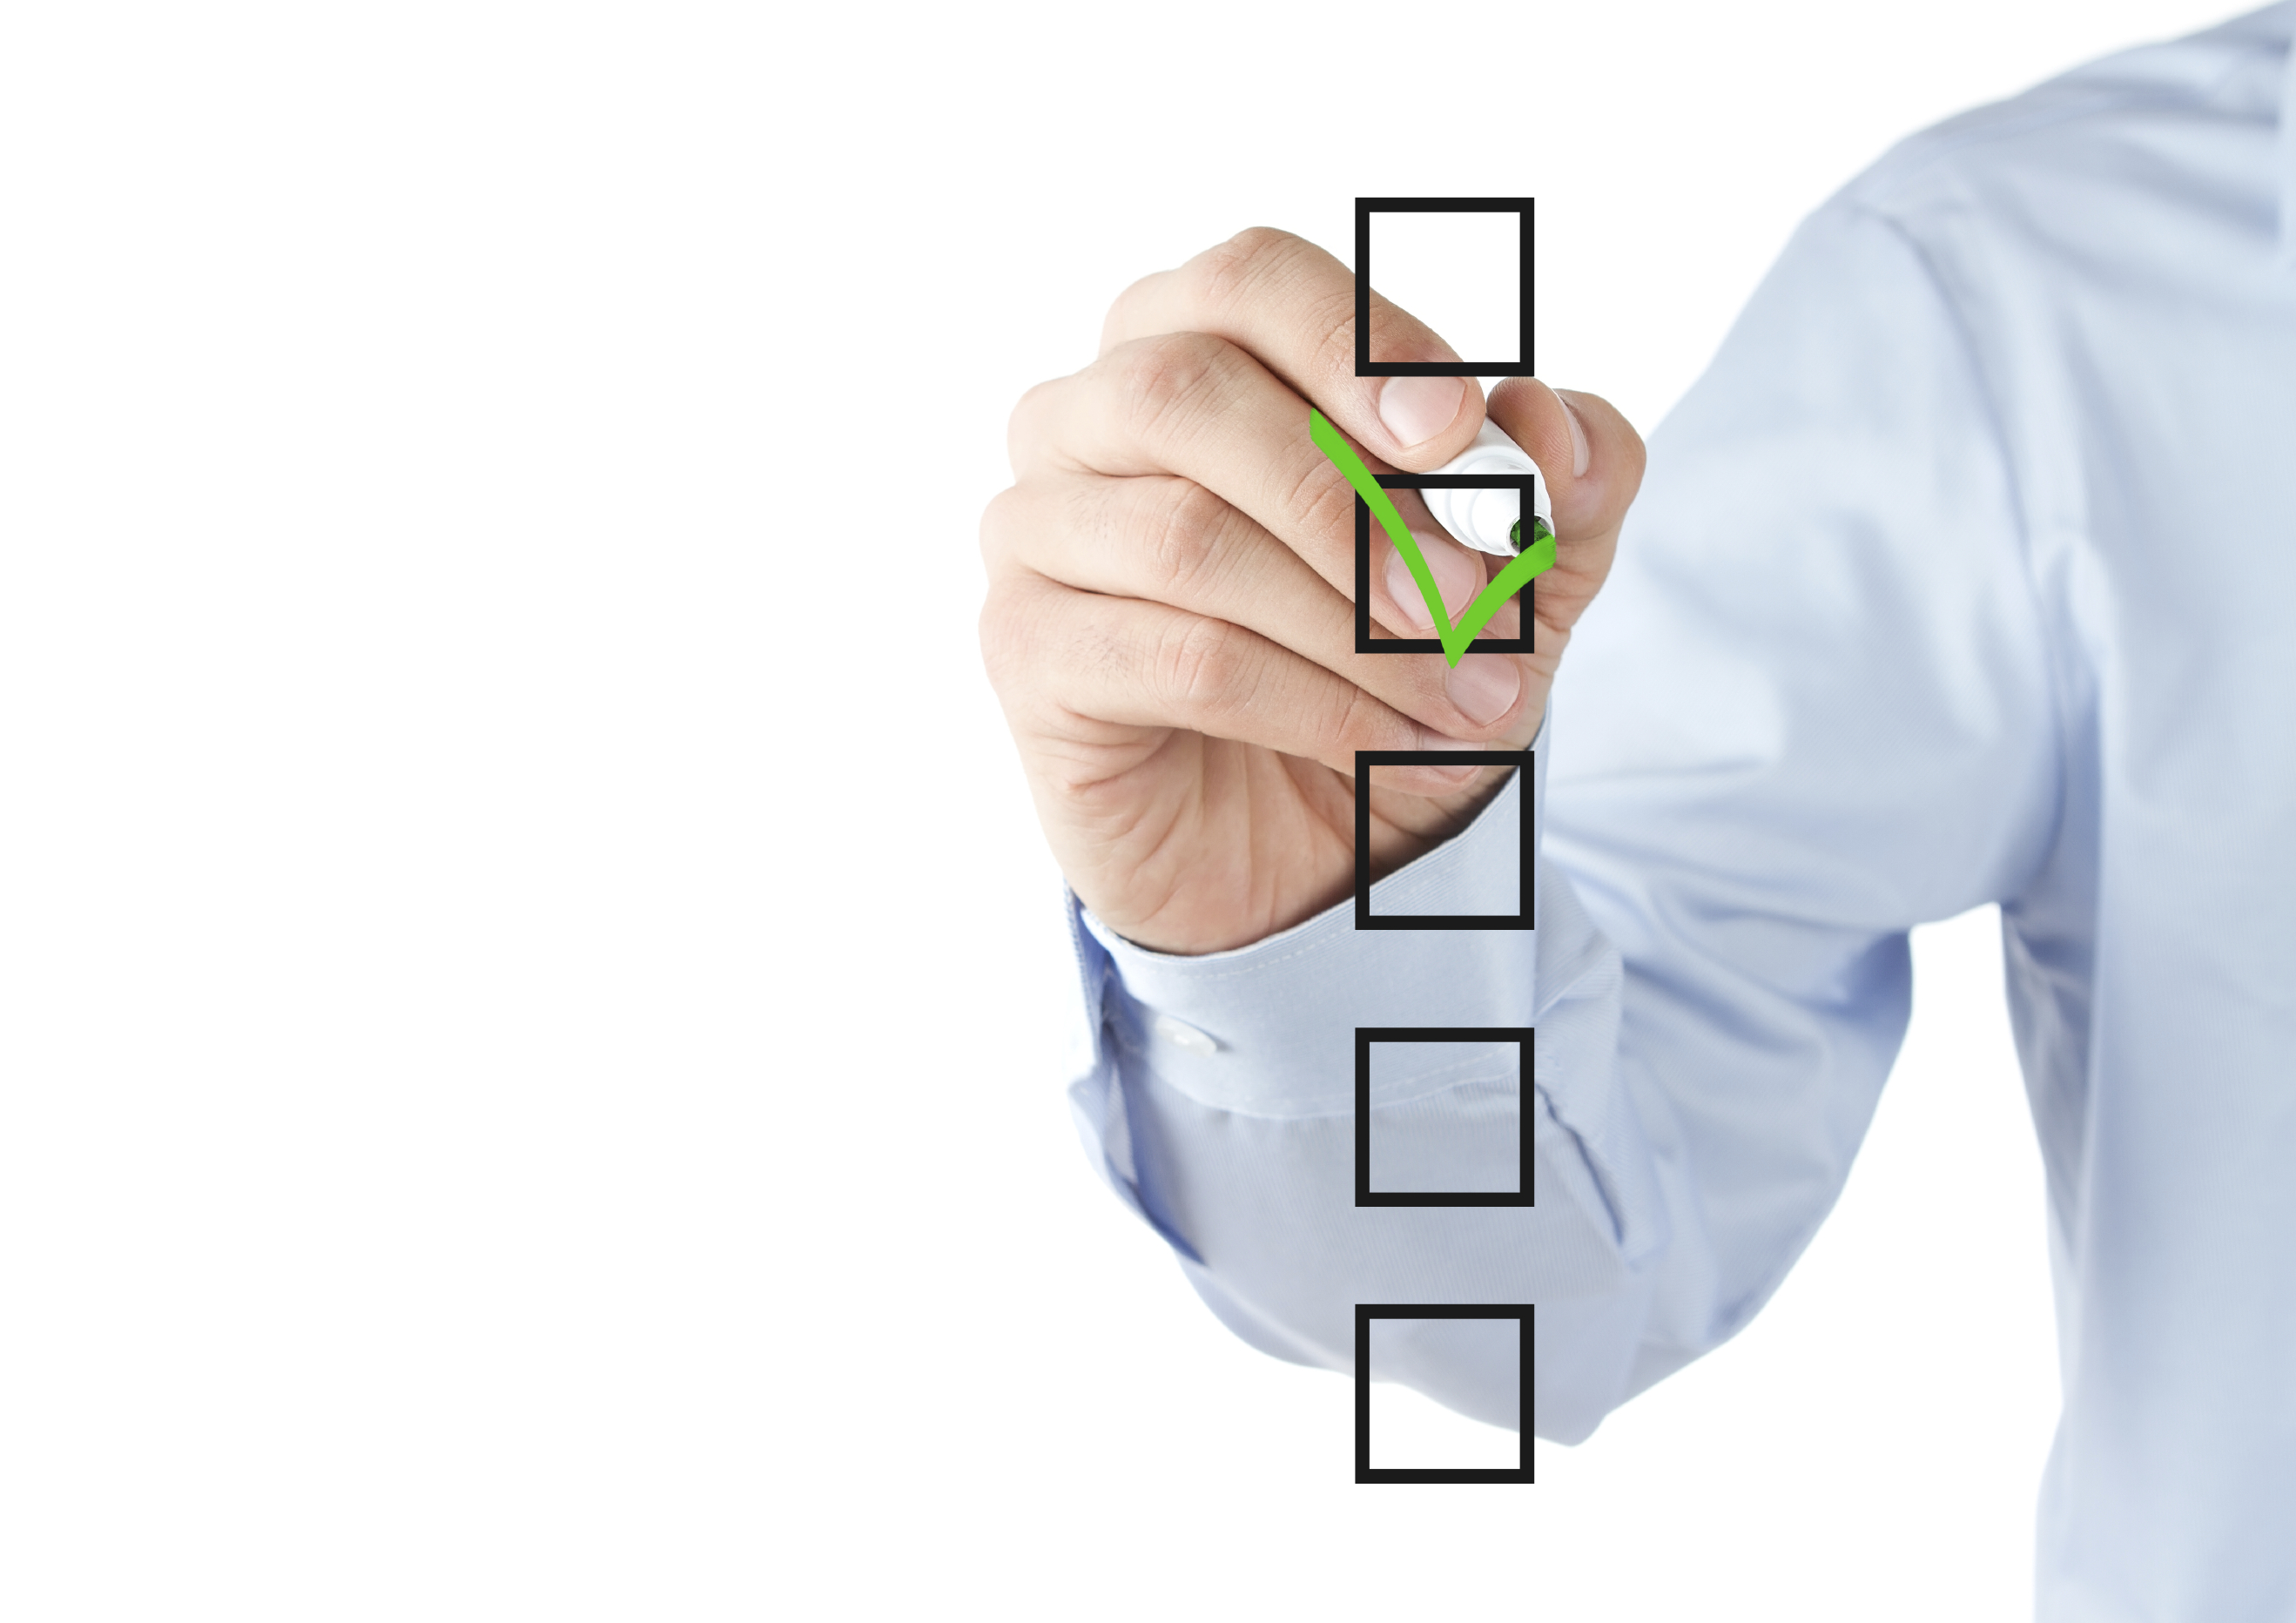 Determine the customization options that meet your needs